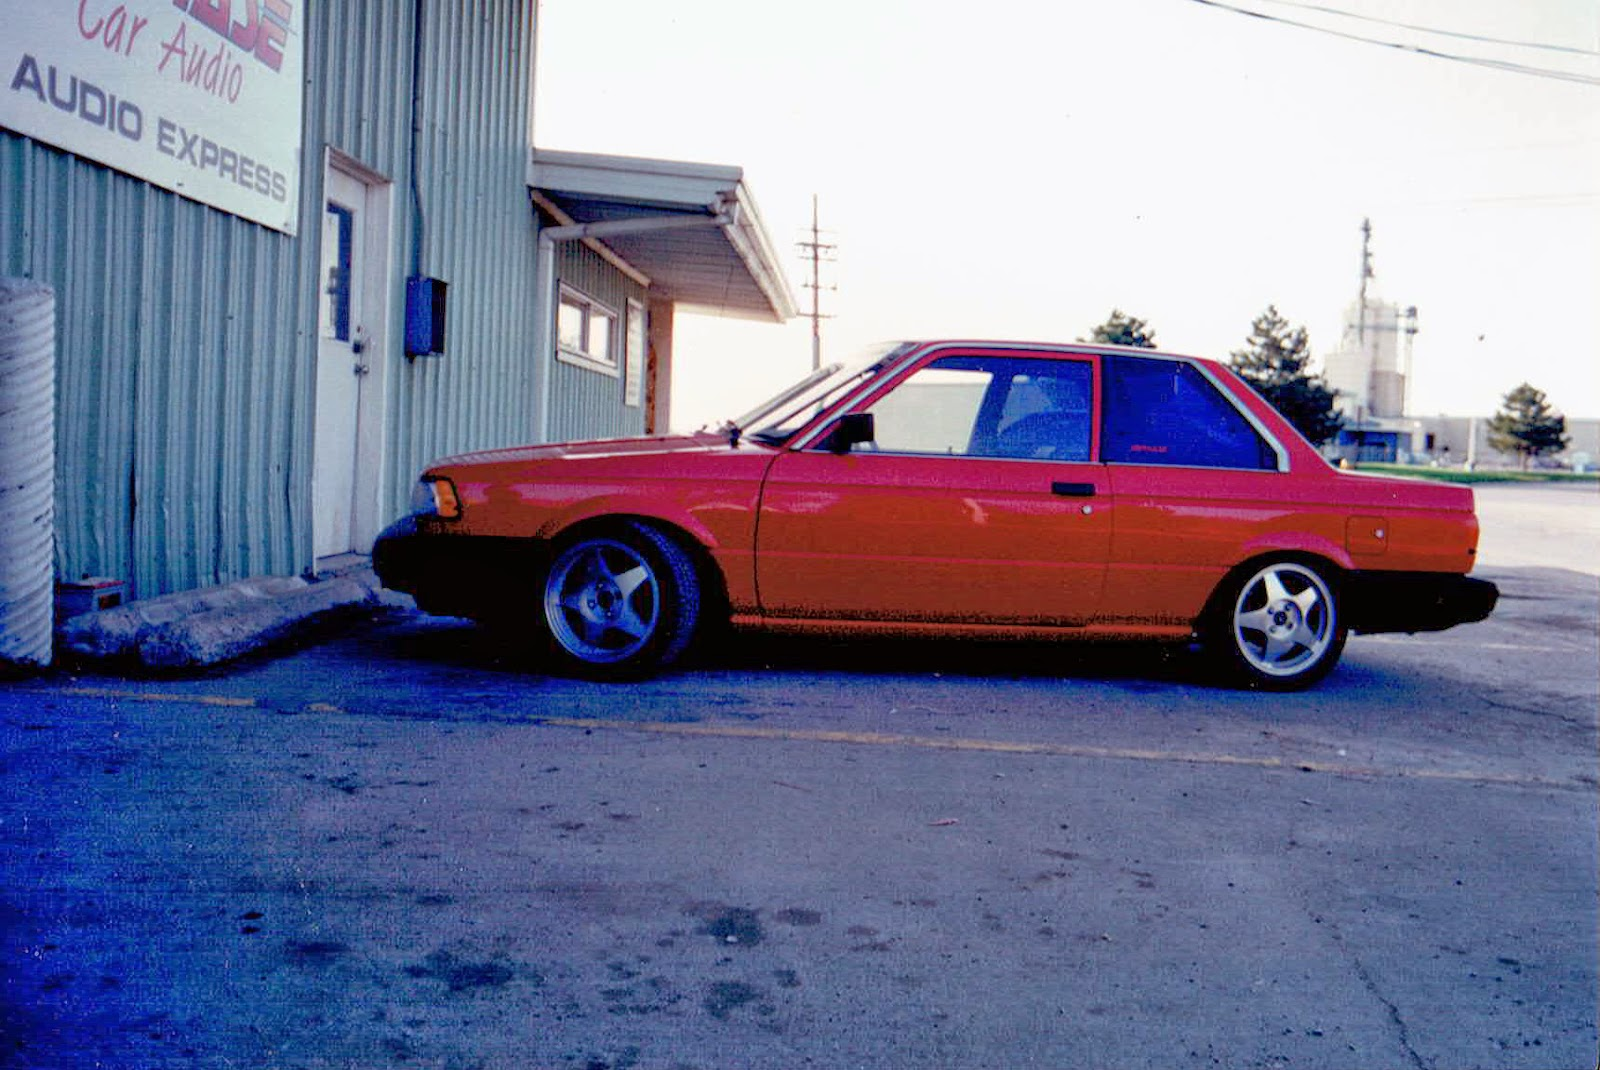 Photo of 1991 Red Nissan Sentra owned by Alberto A Lopez for sound off competitions